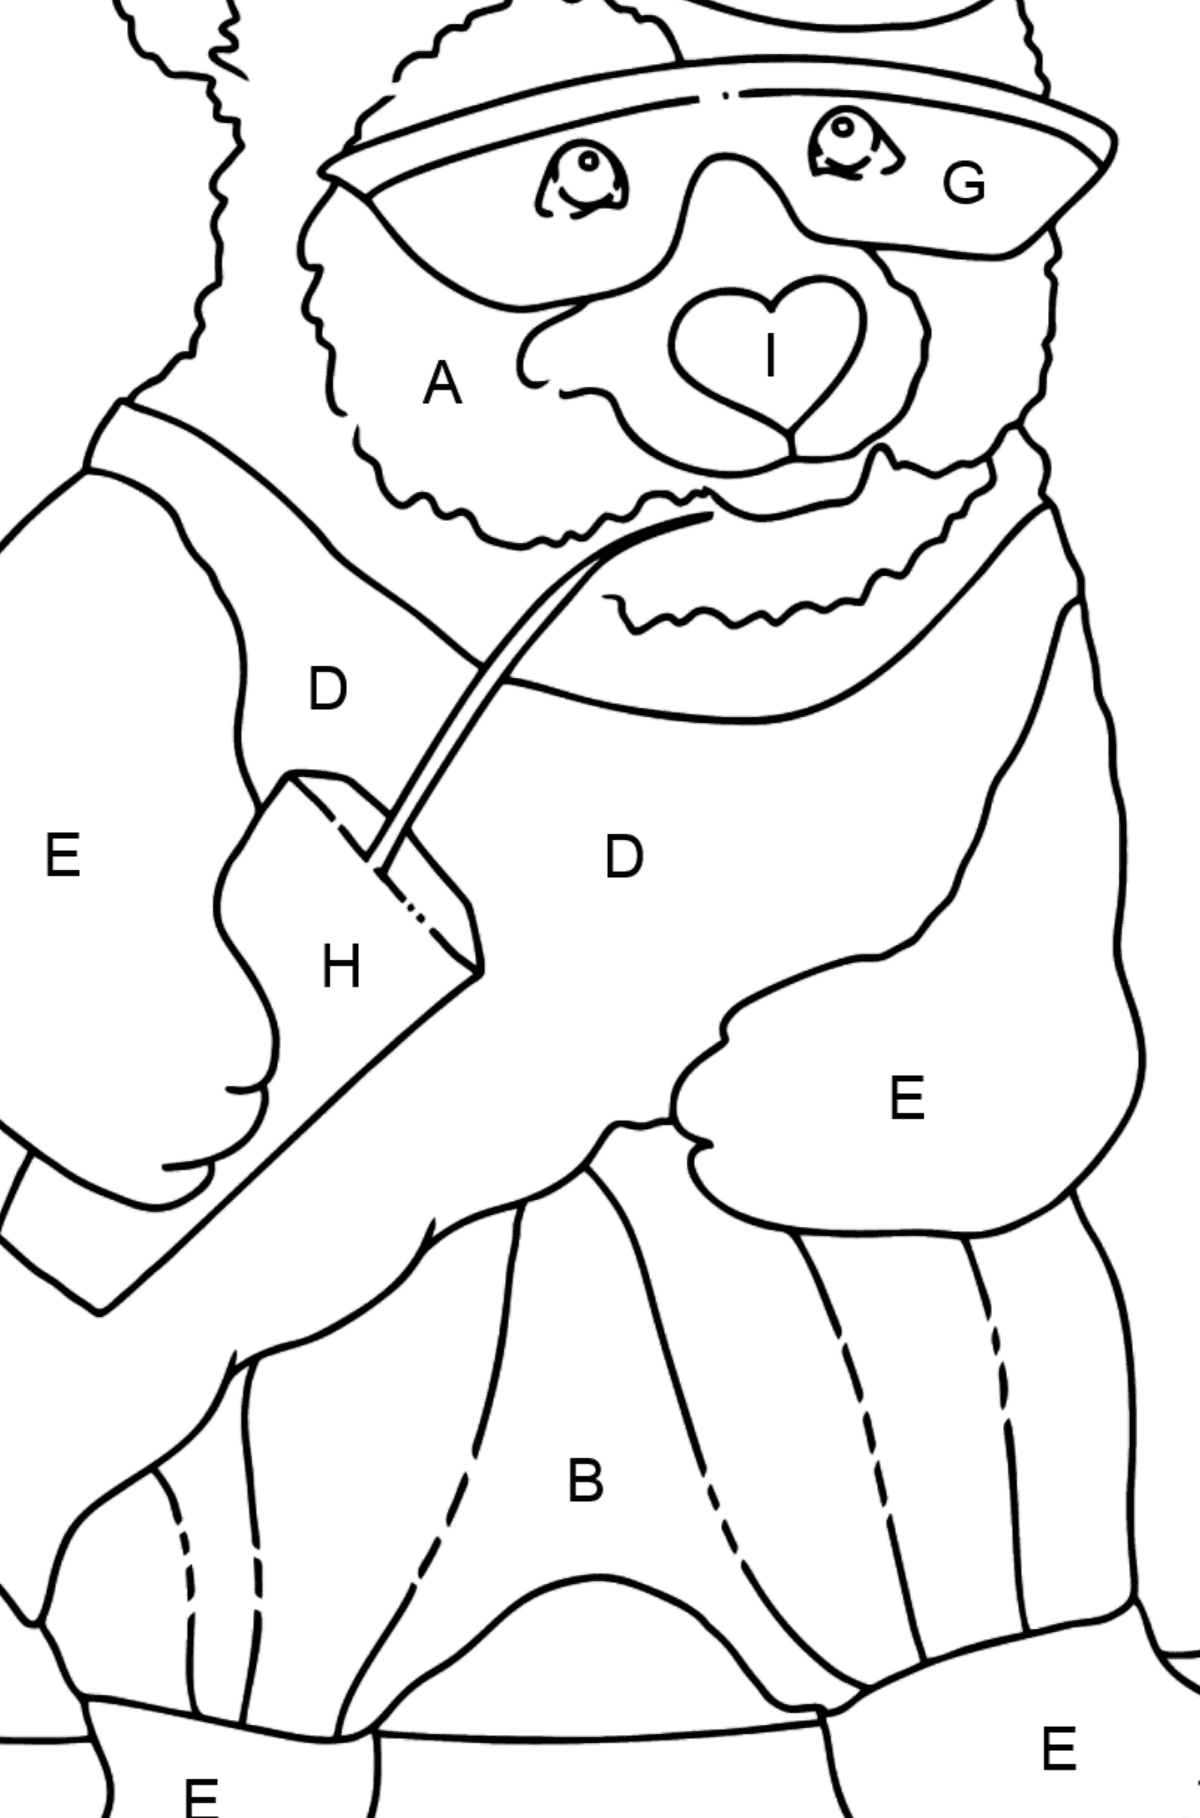 Coloring Page - A Panda on a Skateboard - Coloring by Letters for Kids